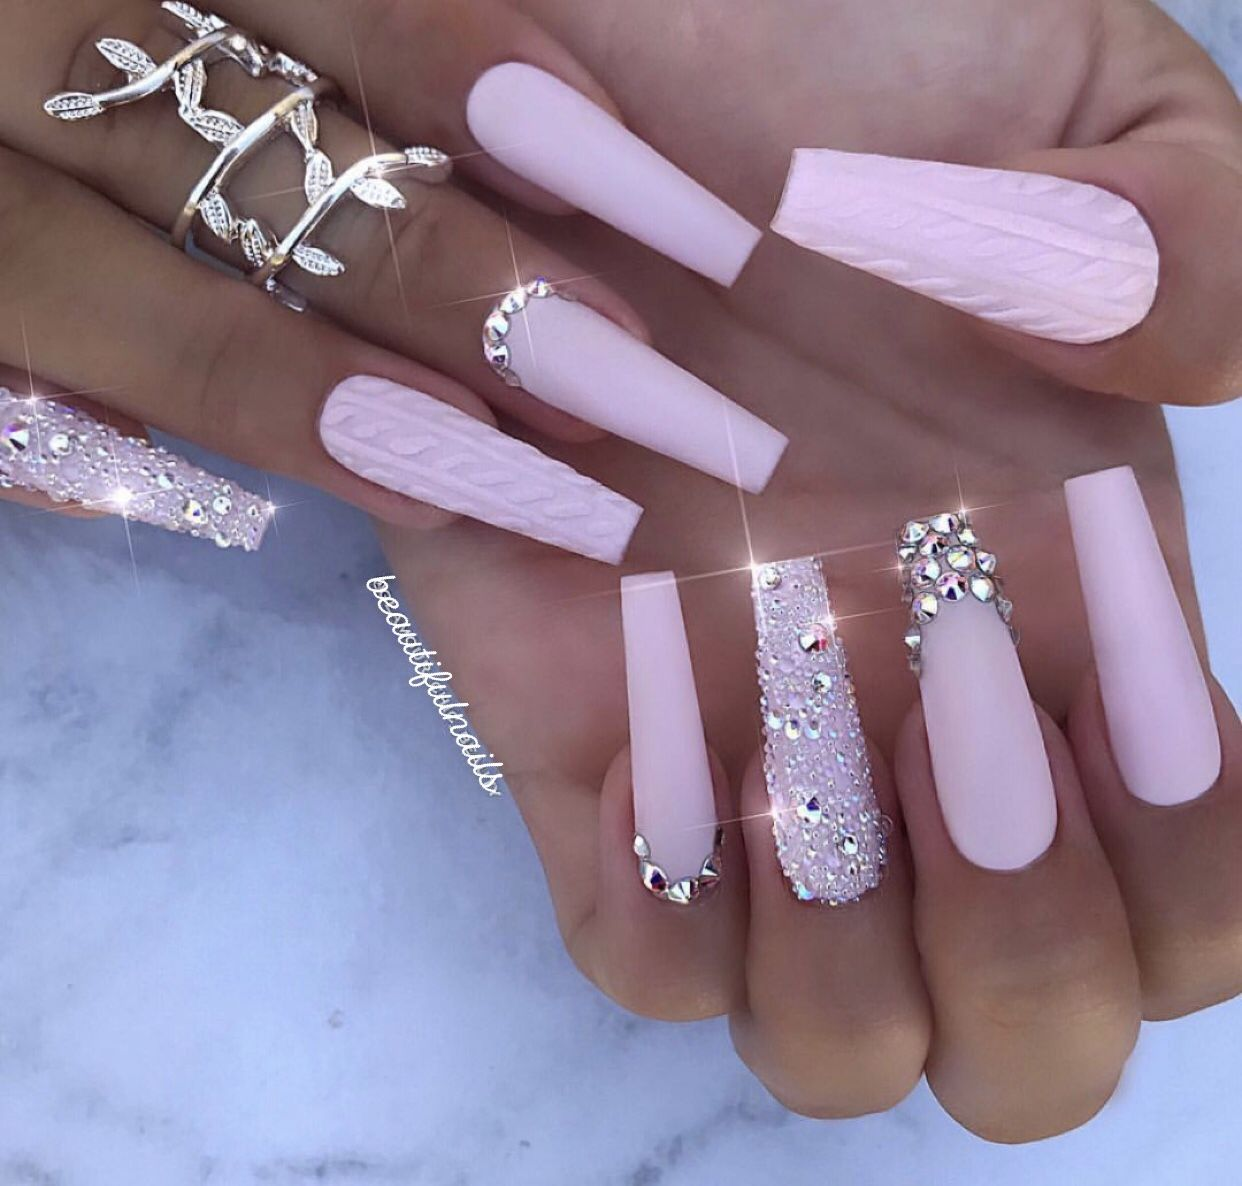 Pink Coffin Nails With Crystals Pink Acrylic Nails Rhinestone Nails Coffin Nails Long